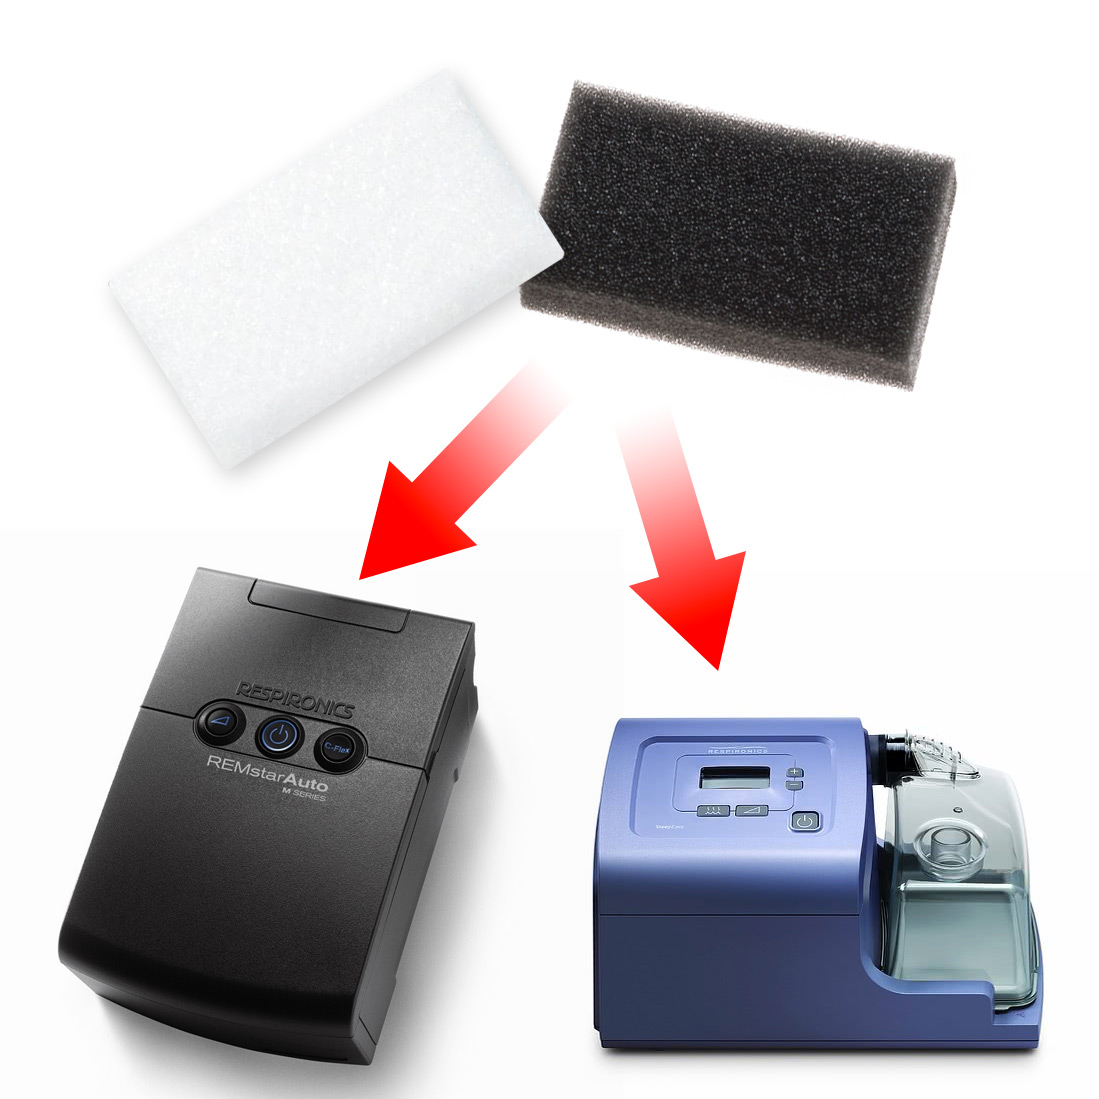 remstar plus cpap machine instructions